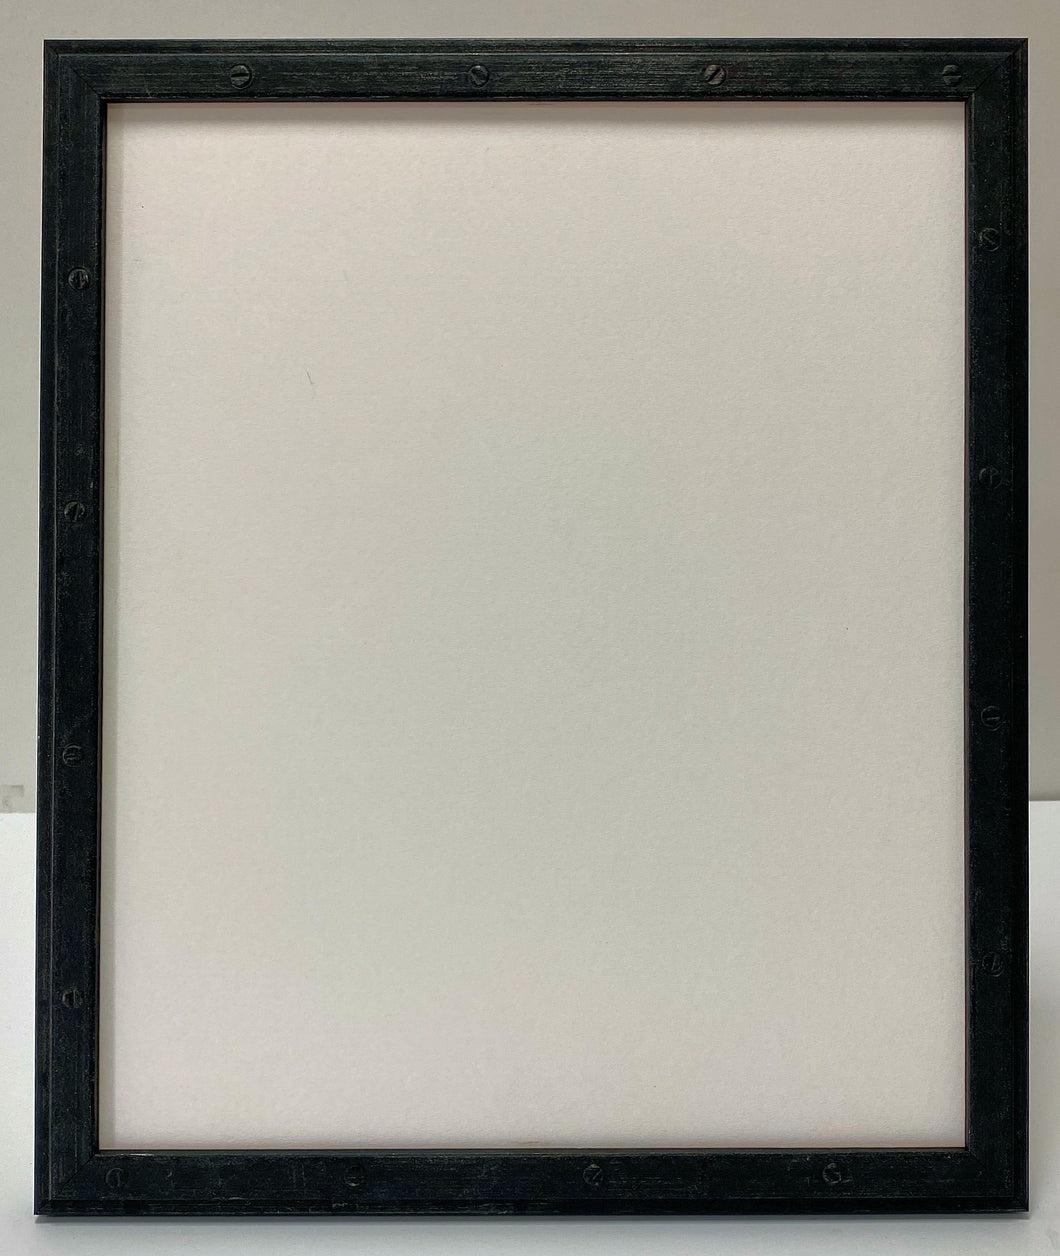 Oiled steel effect Wooden Picture Frame (18mm wide)